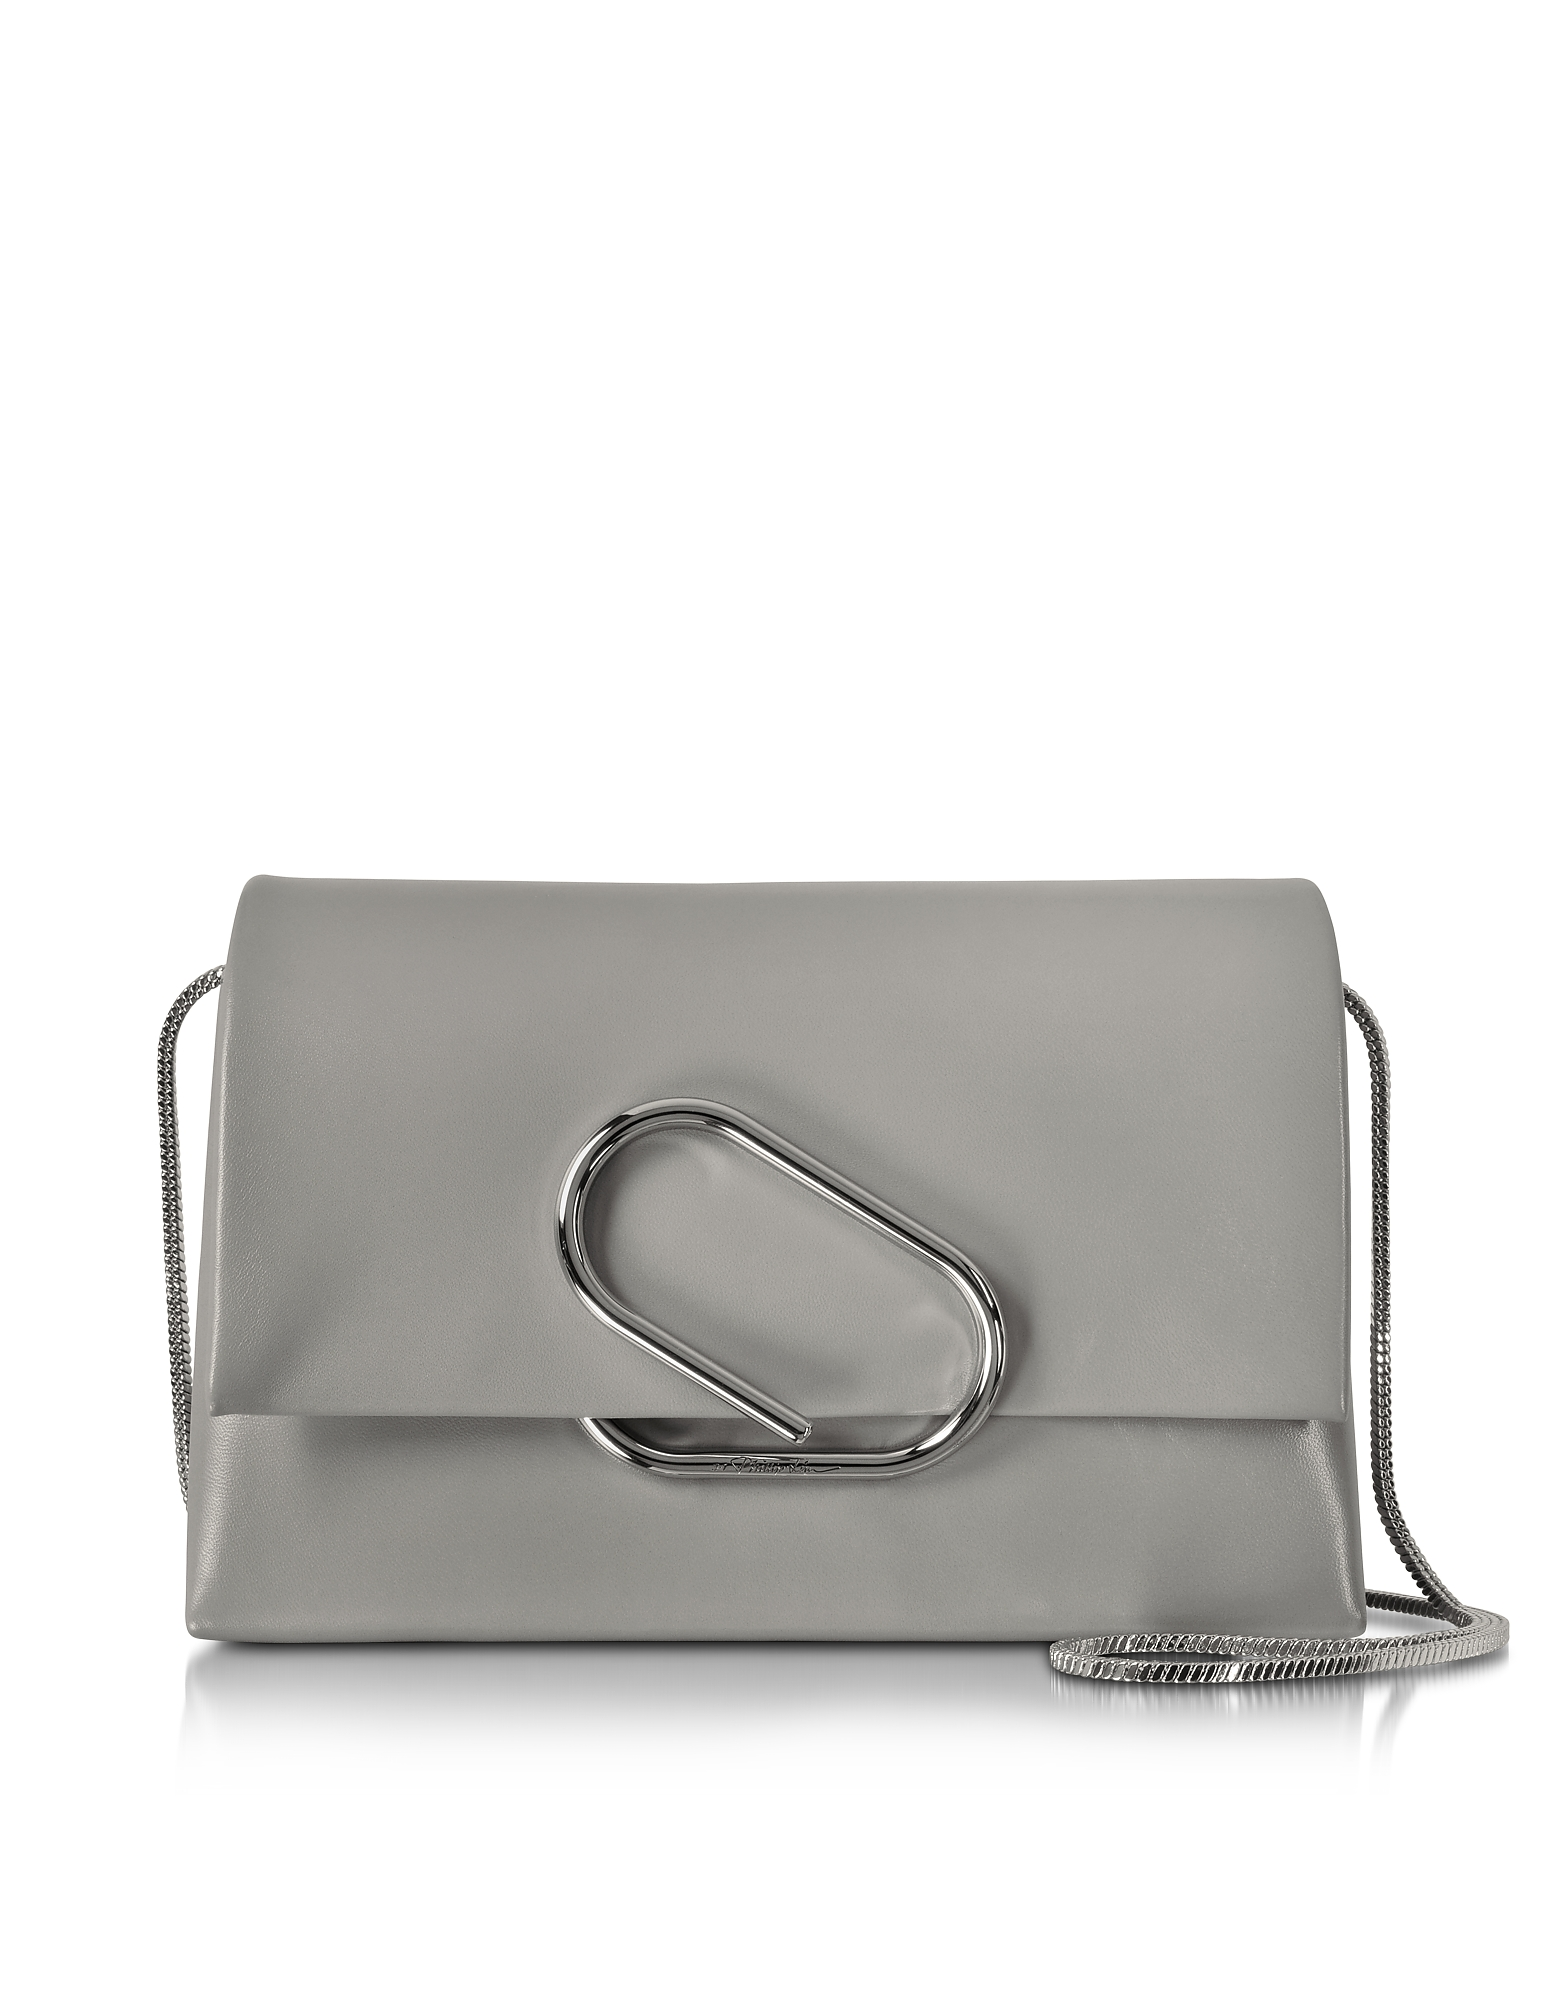 3.1 Phillip Lim Alix Cement - ����� ������ ������� ����� � ��������